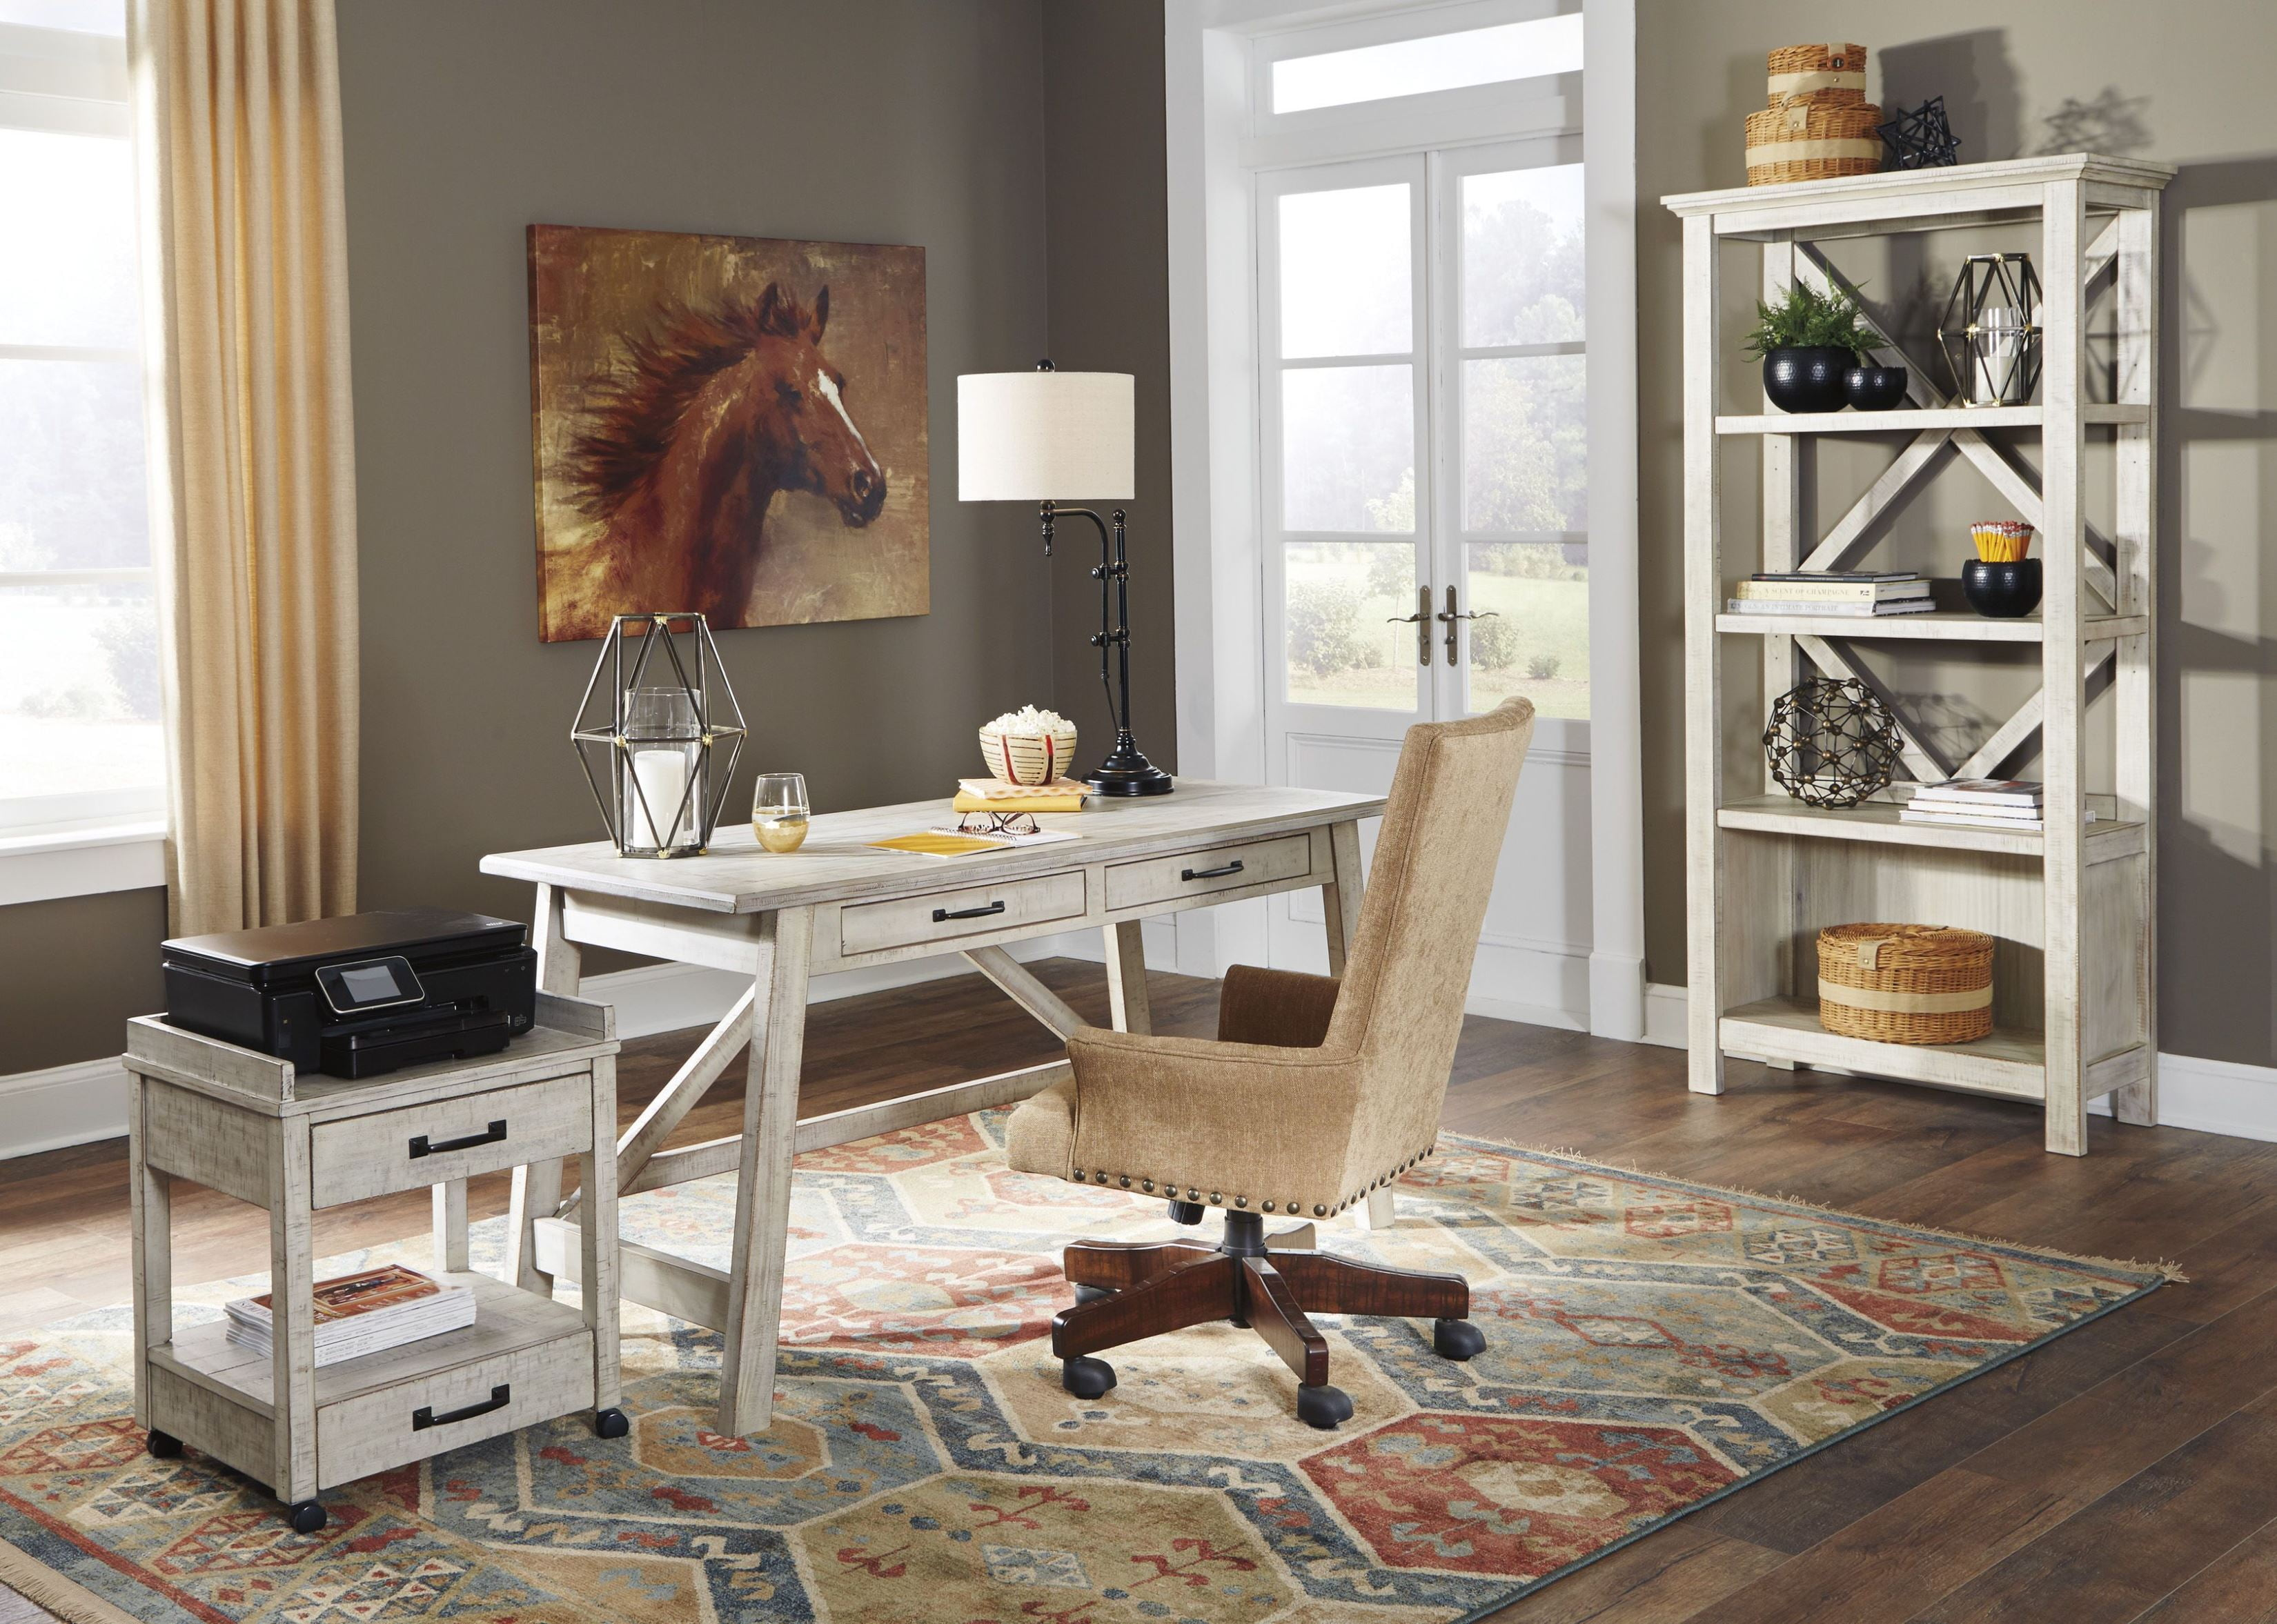 home decor high tone home decor catalogs.htm bolanburg two tone home office set from ashley coleman furniture  bolanburg two tone home office set from